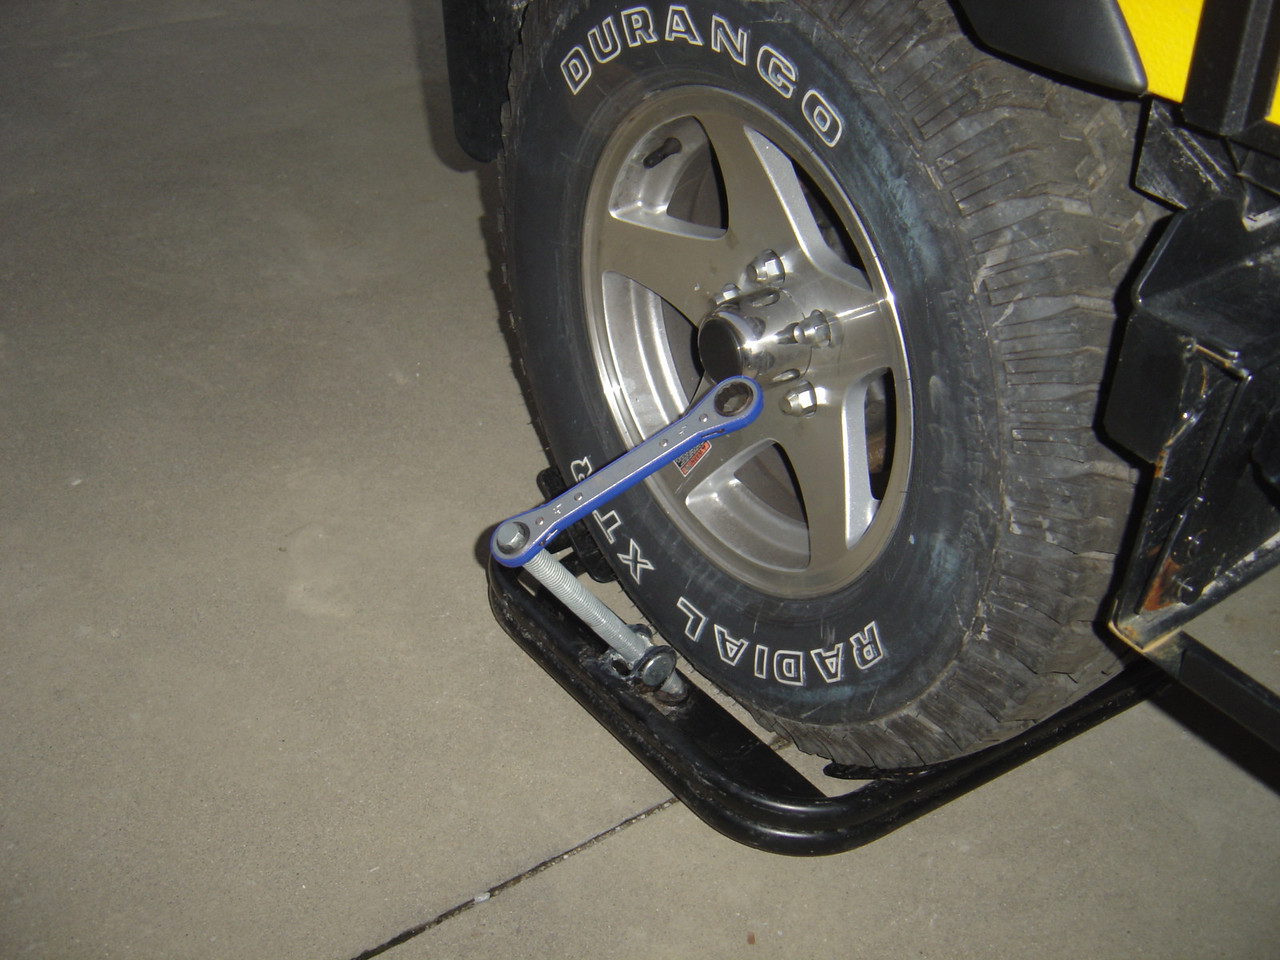 The BAL leverler is placed under the tire which needs to be raised.  The end of the screw needs to placed in a ring at the based of the leverler.  The wrench is turned clockwise to raise the tire and anti-clockwise to lower it.